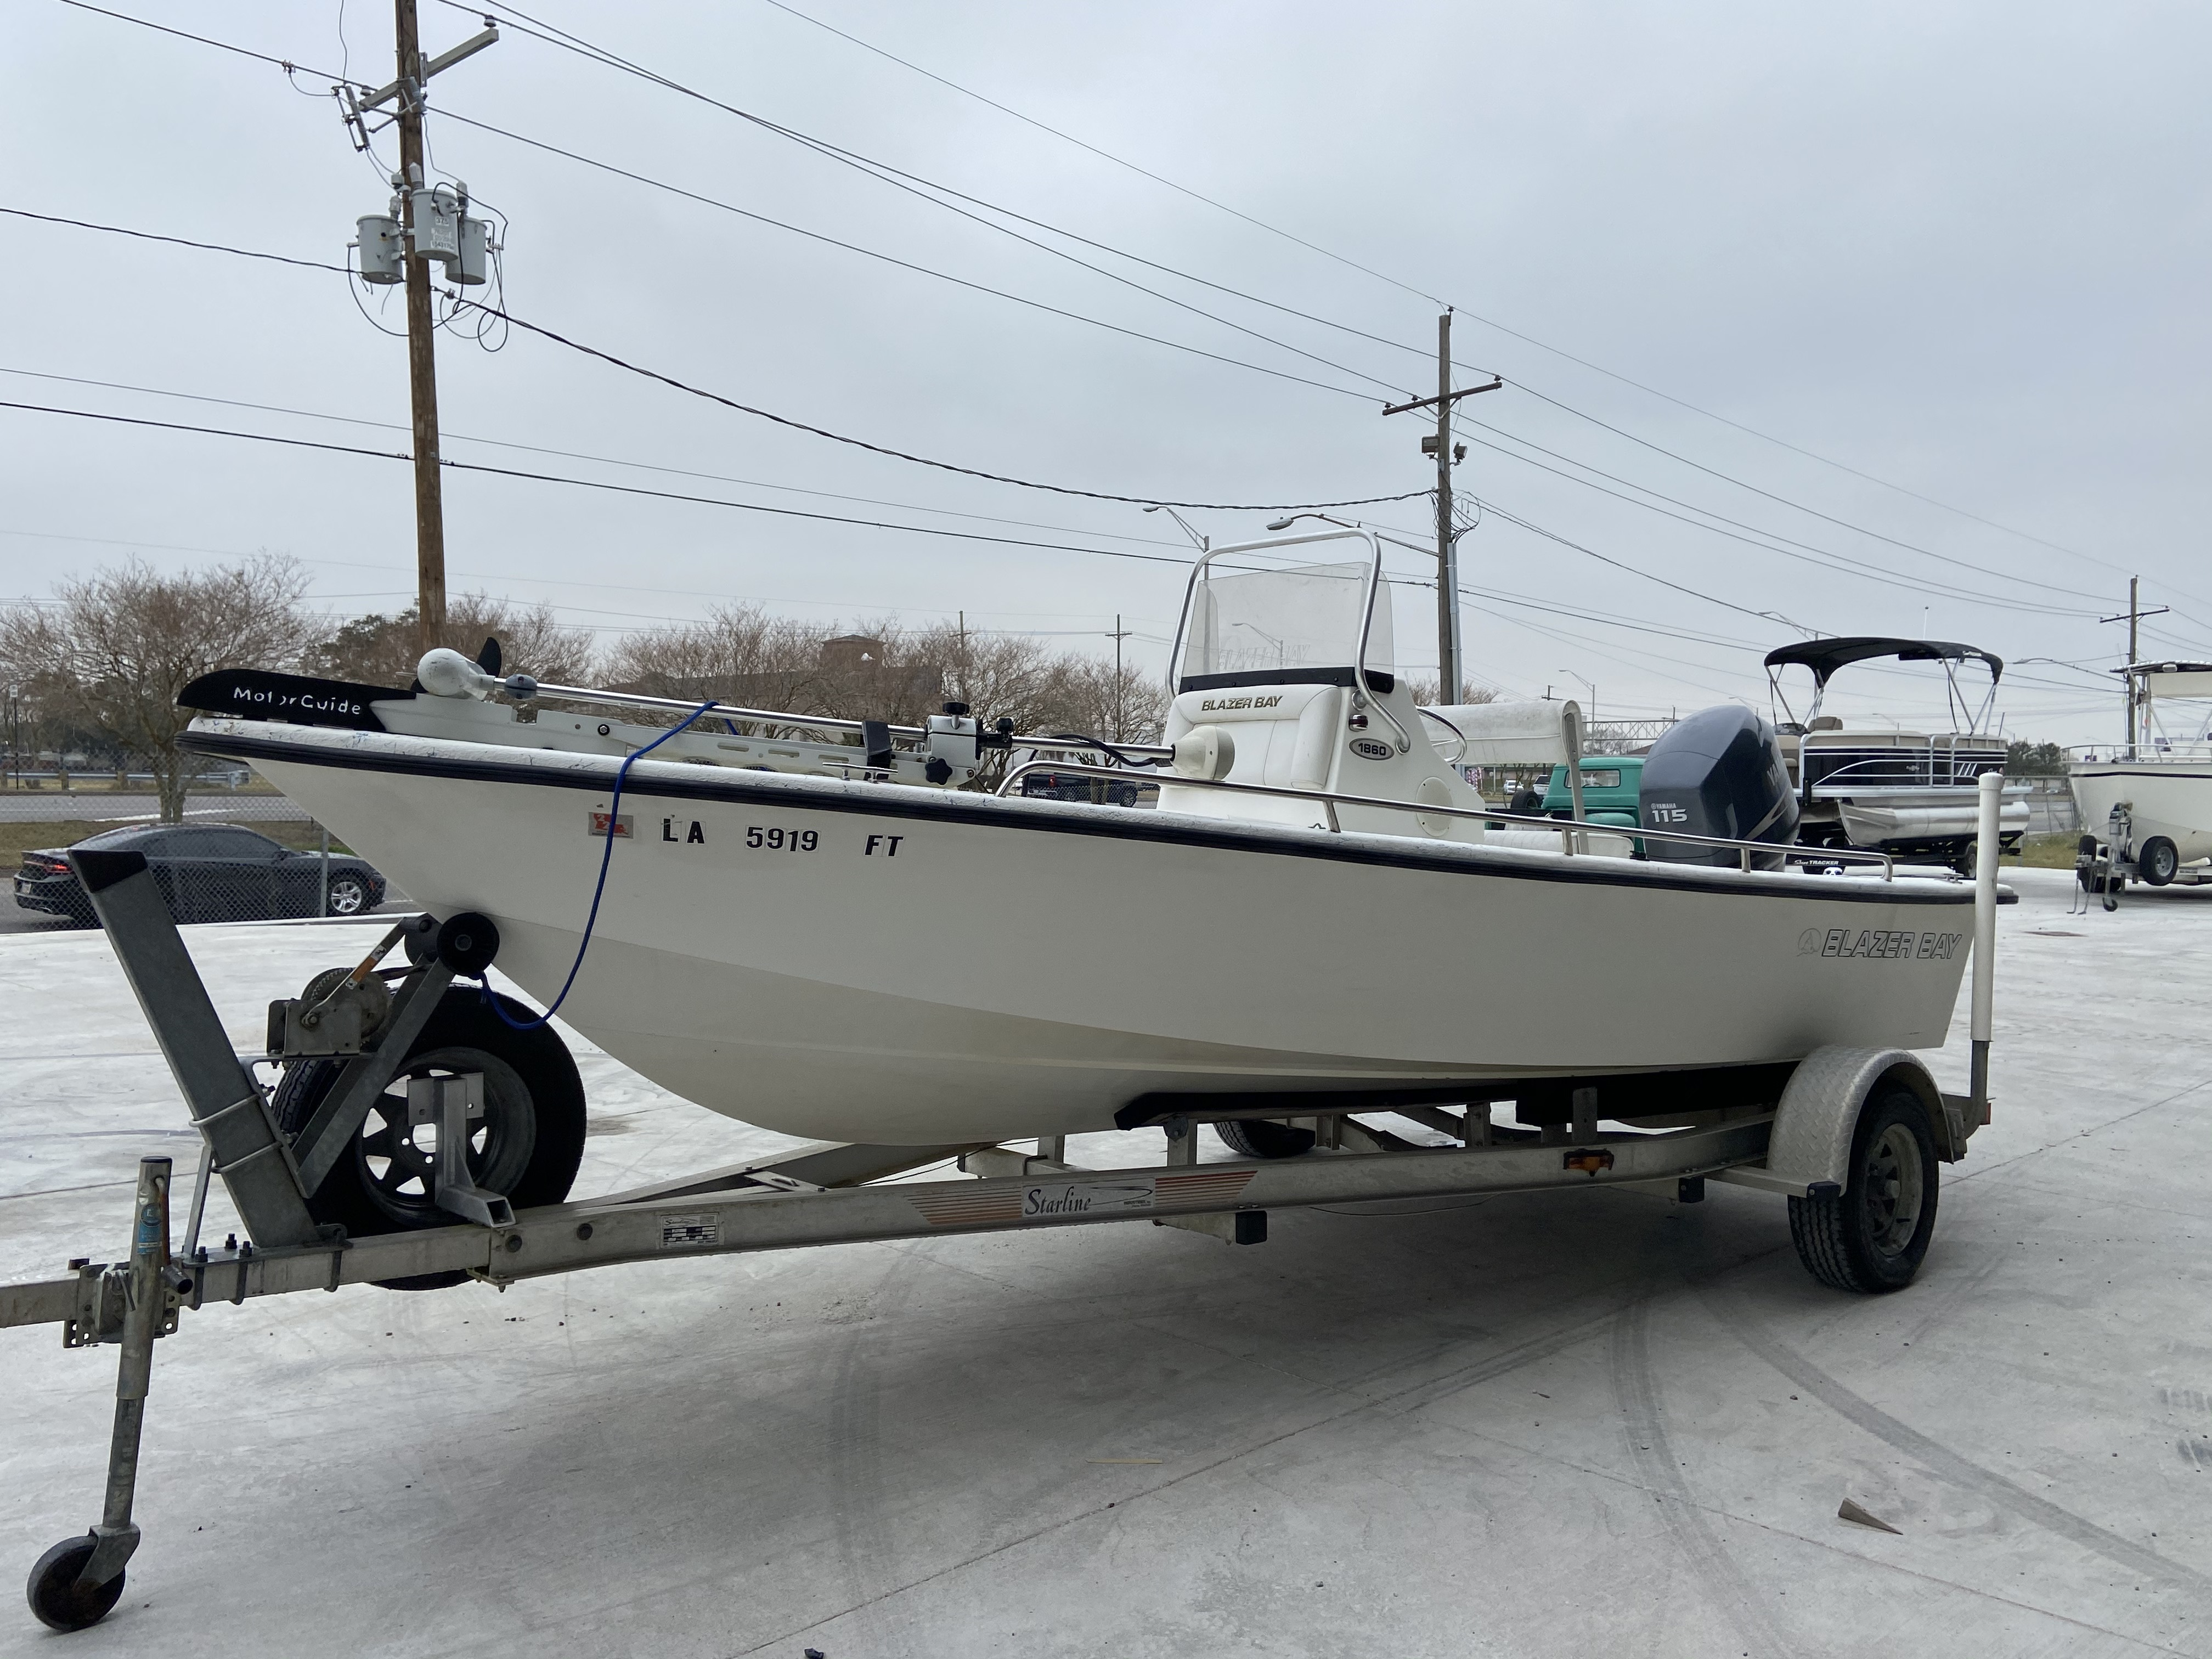 2008 Blazer boat for sale, model of the boat is 1860 CC & Image # 14 of 15